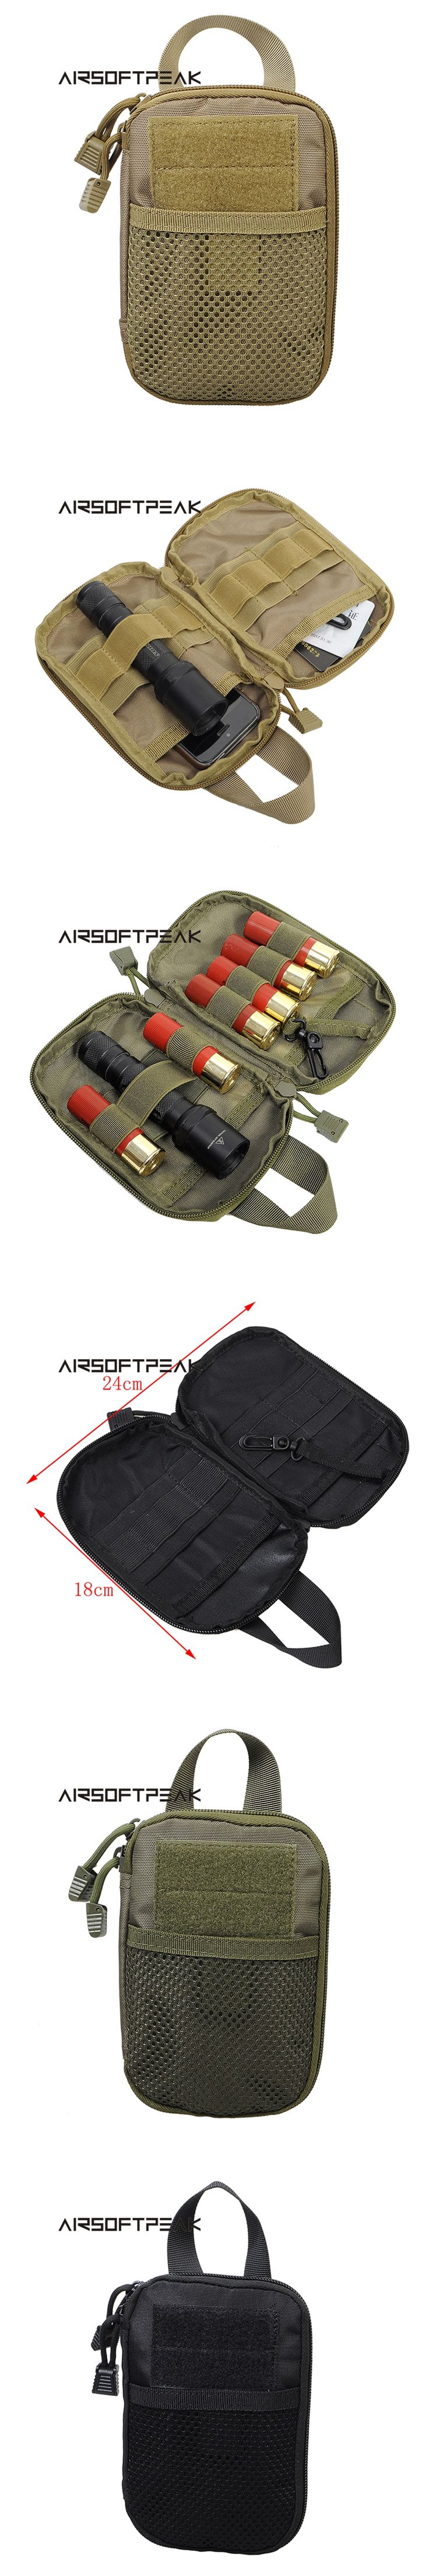 AIRSOFTPEAK Military Tactical Waist Hunting Bags 1000D Outdoor Multifunctional EDC Molle Bag Durable Belt Pouch Magazine Pocket